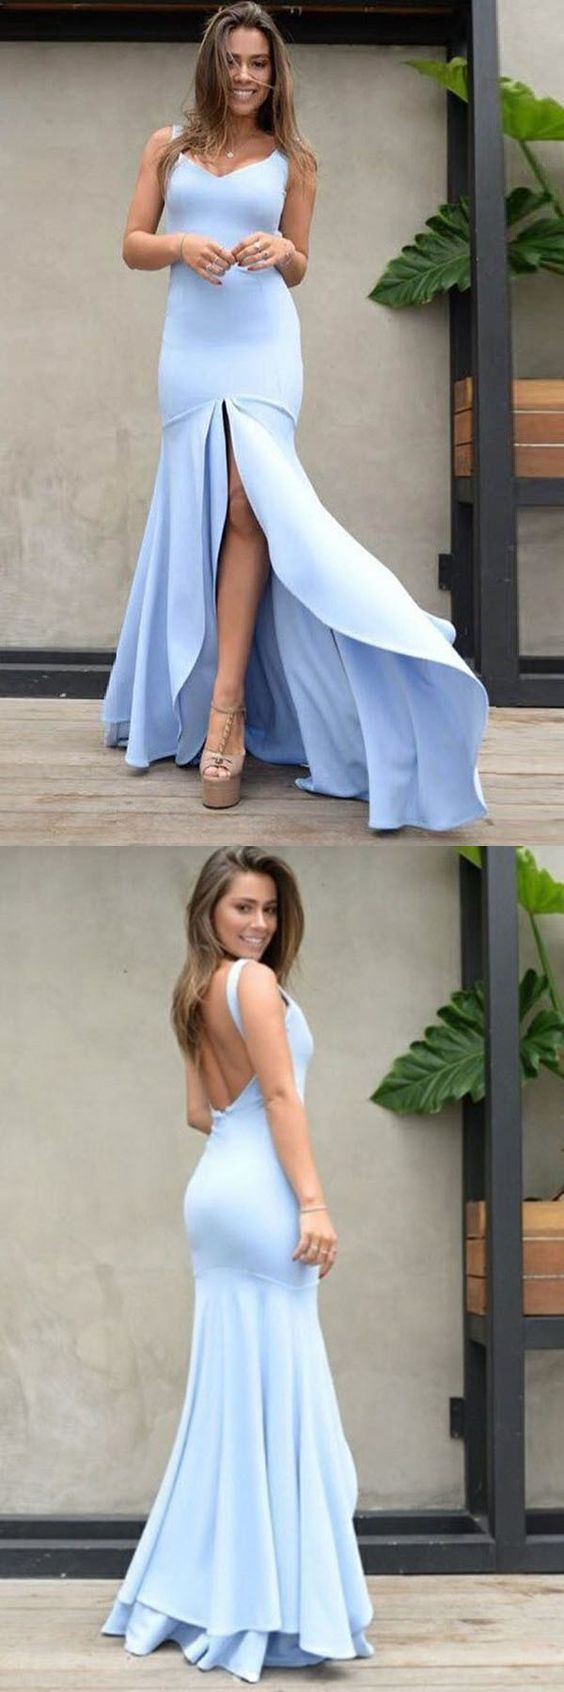 Mermaid Scoop Backless Blue Satin Prom Dress with Split, F0614